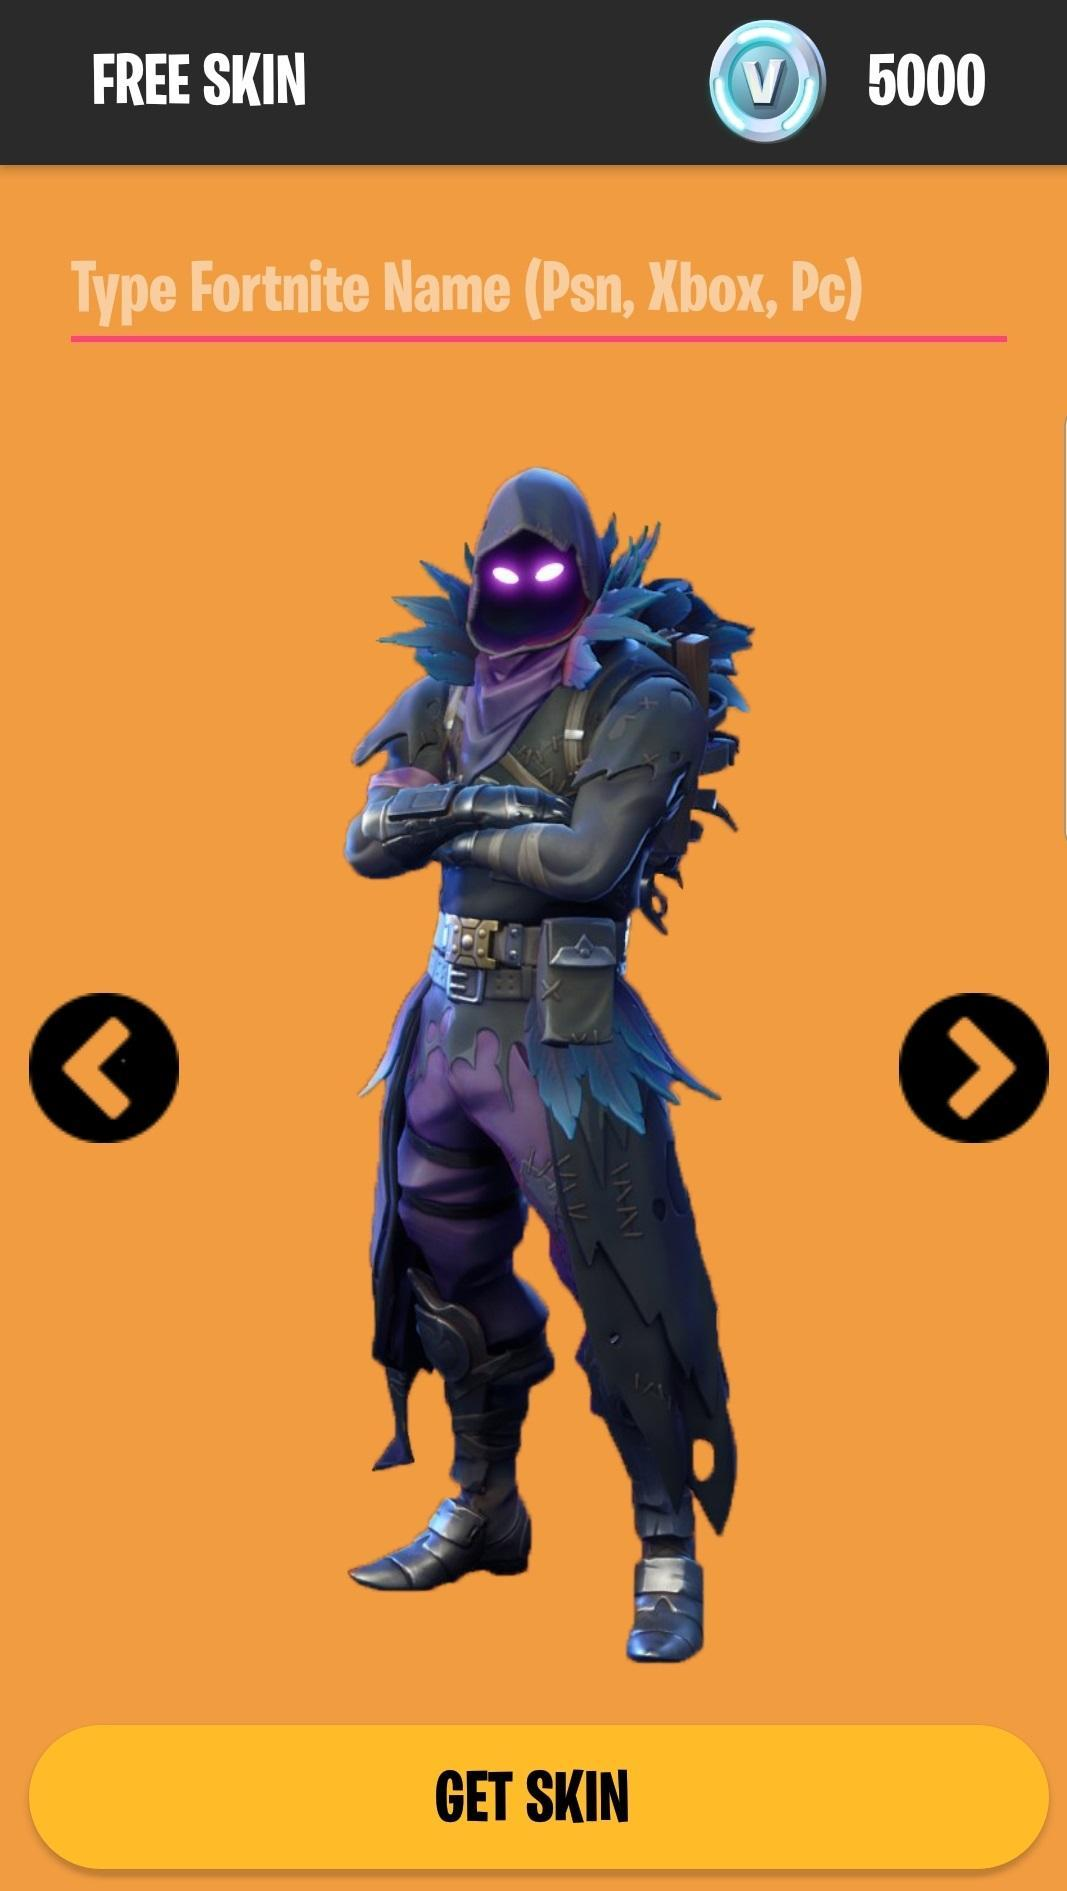 Fortnite Free Skins for Android - APK Download